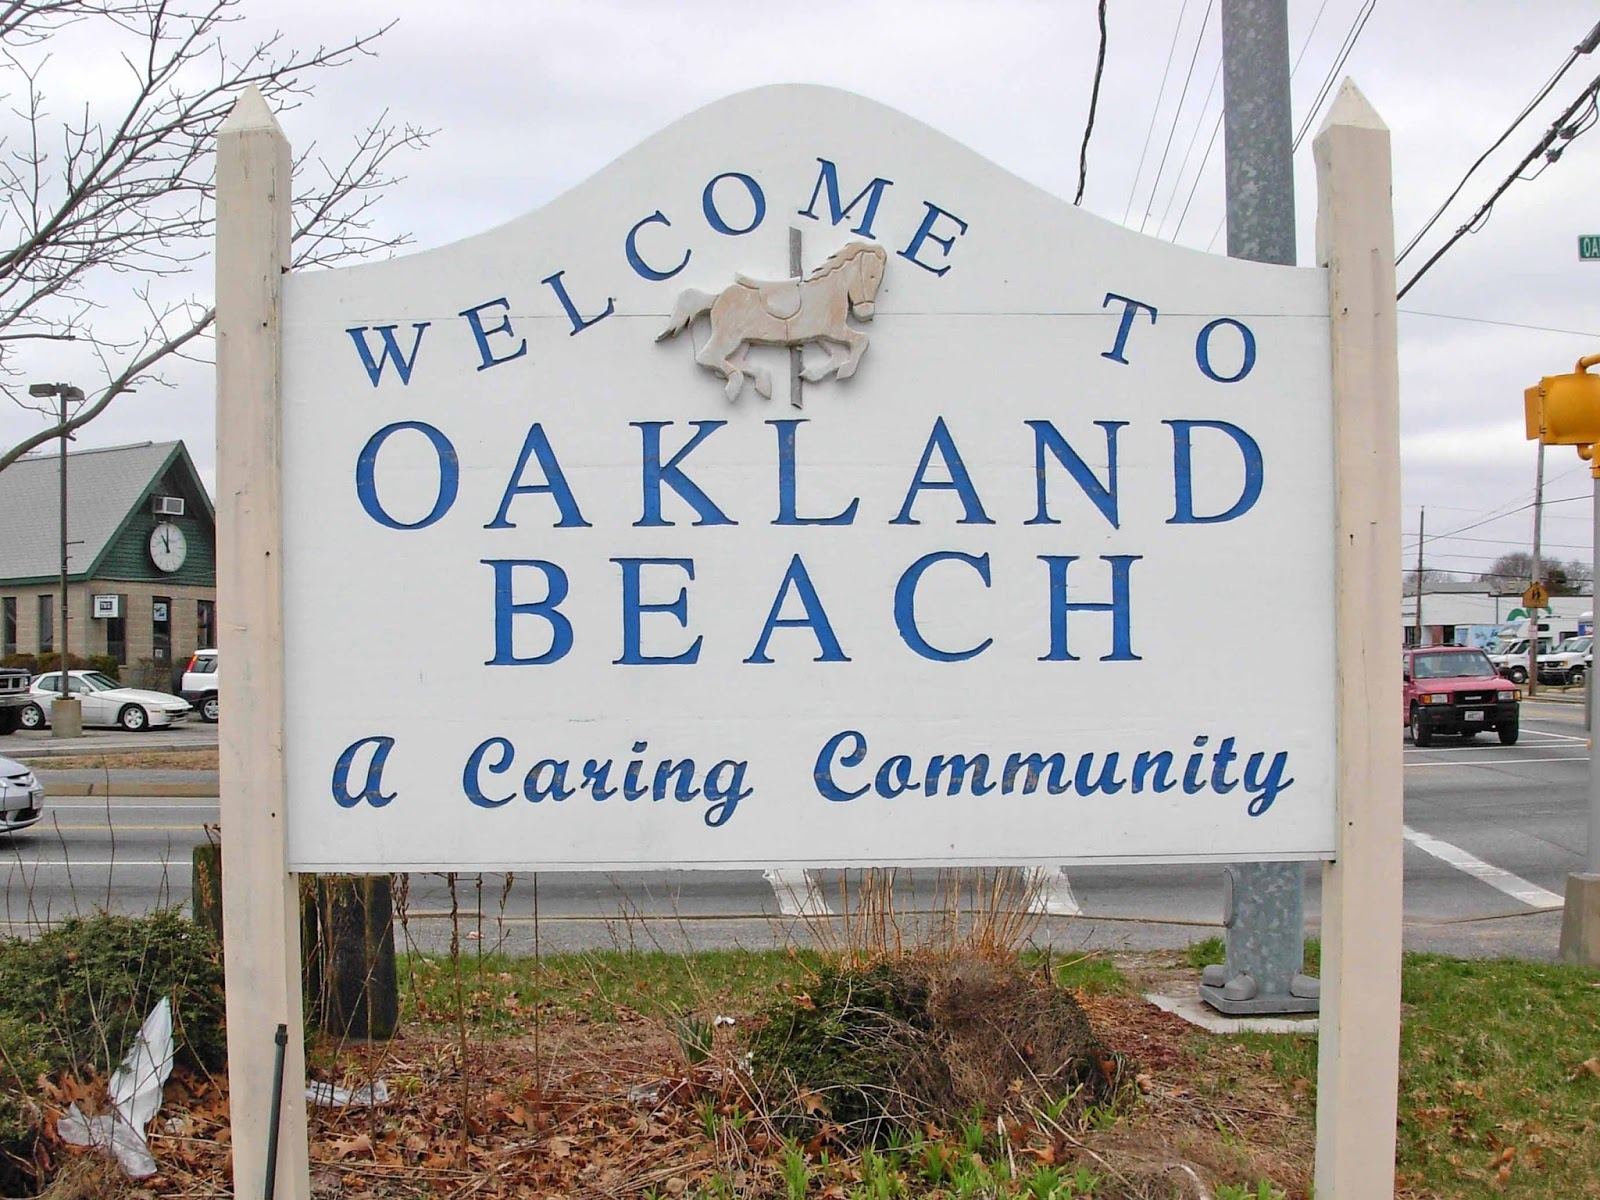 Blue E As Geo Therapy Beaches Welcome To Oakland Beach Warwick Rhode Island 2008 A Caring Community